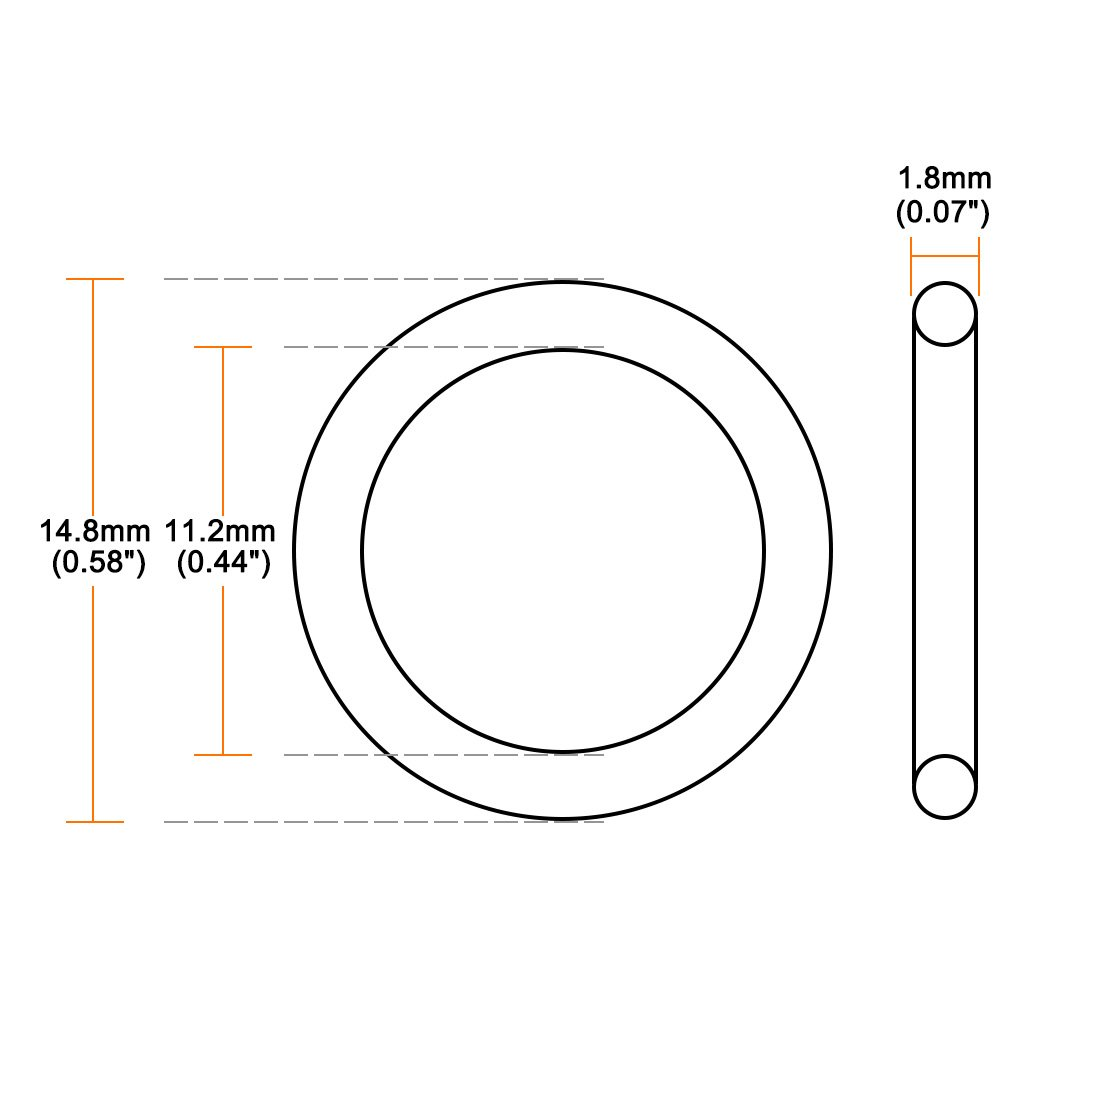 Round Seal Gasket Pack of 10 1.8mm Width 16mm Inner Diameter 19.6mm OD uxcell O-Rings Nitrile Rubber